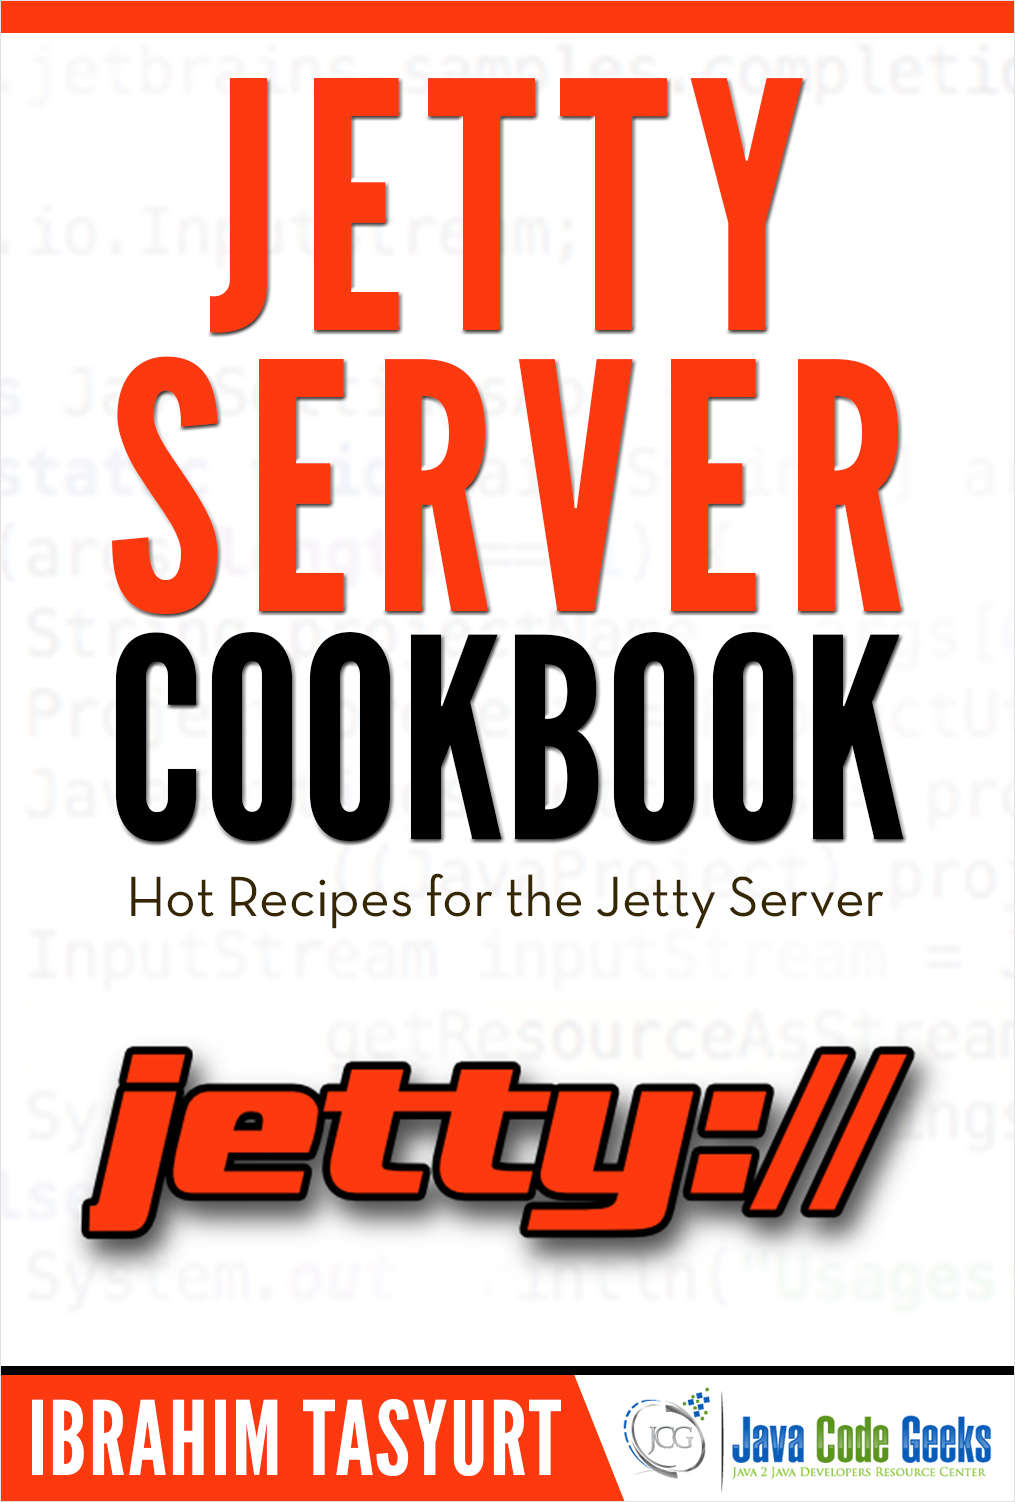 Jetty Server Cookbook